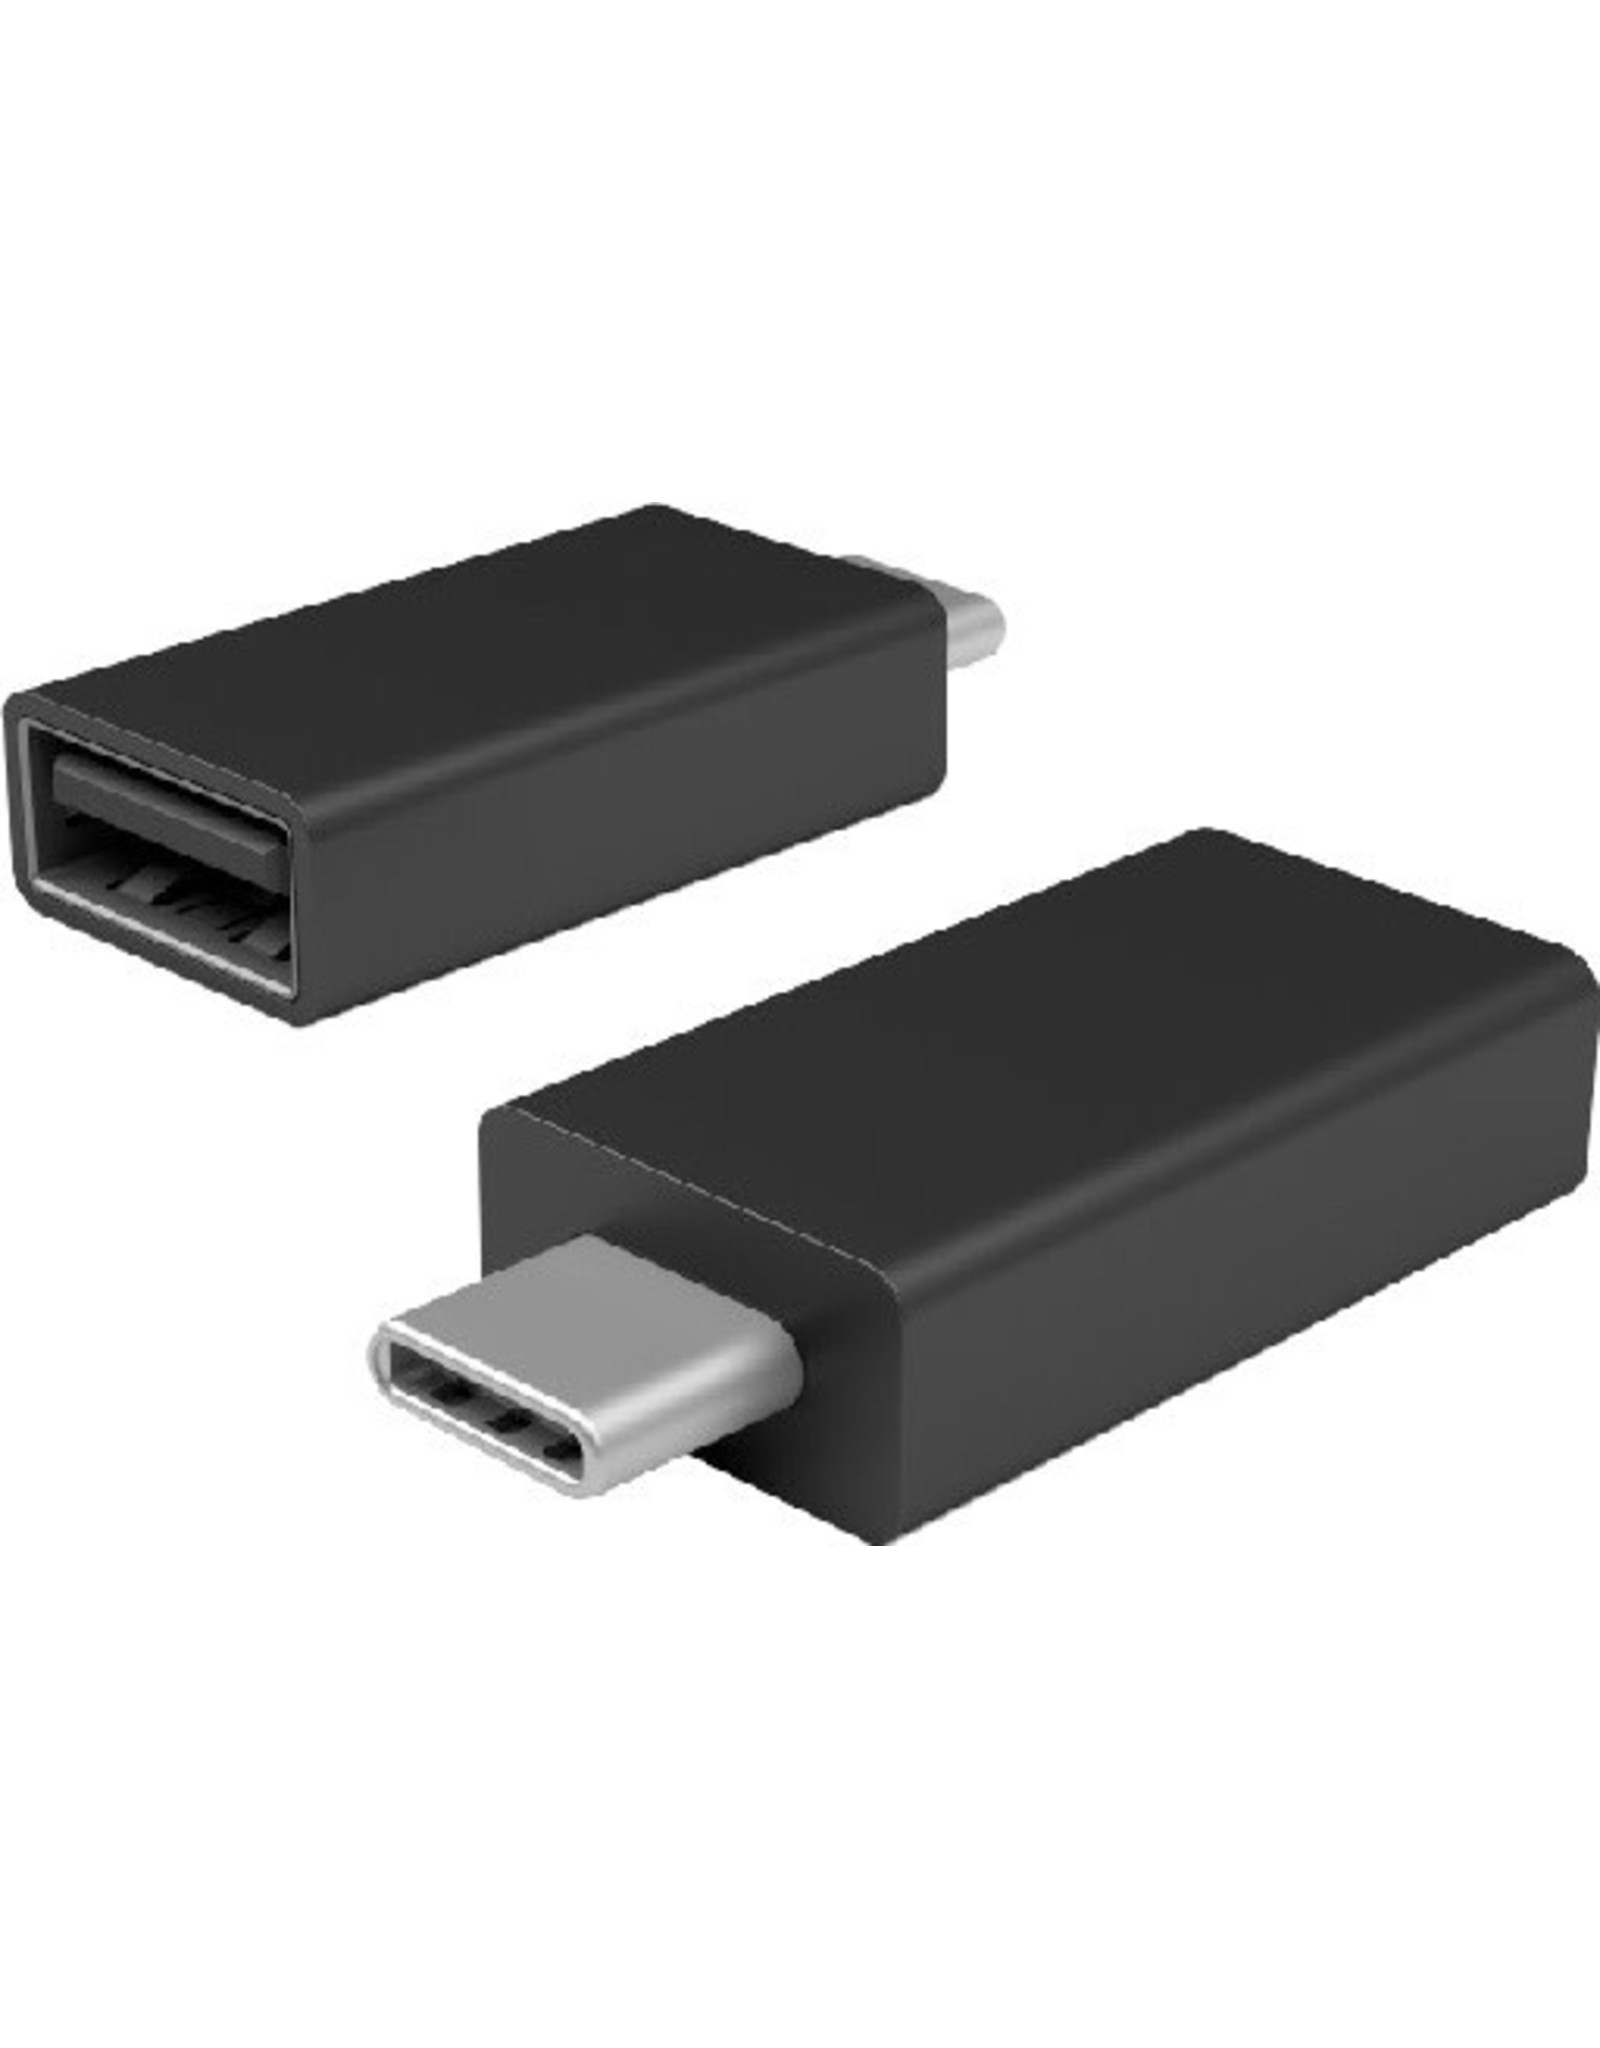 Microsoft Inst. Surface USB-C to USB 3.0 Adapter